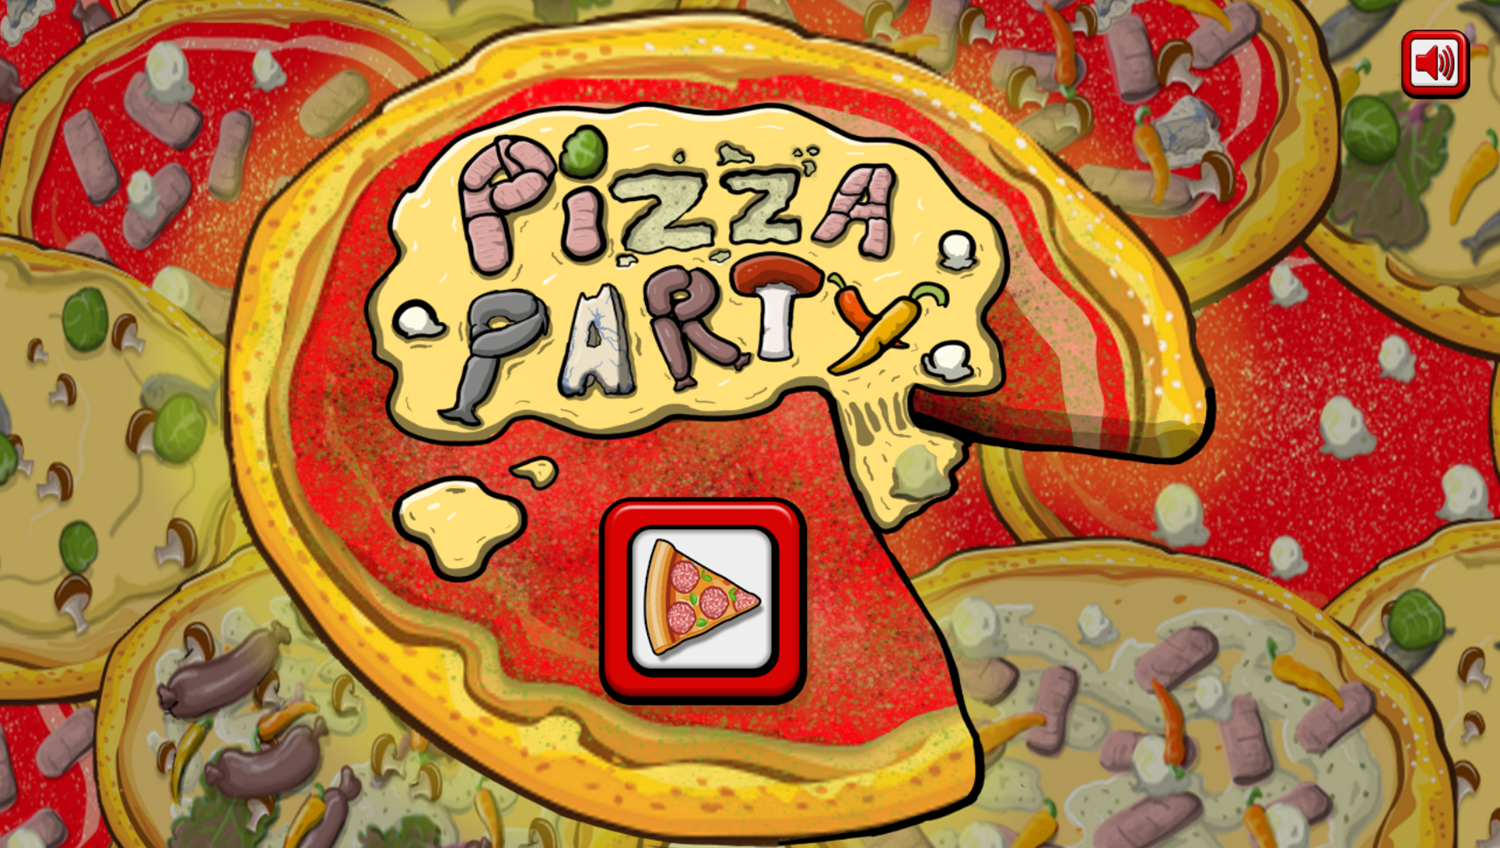 Pizza Party Game Welcome Screen Screenshot.